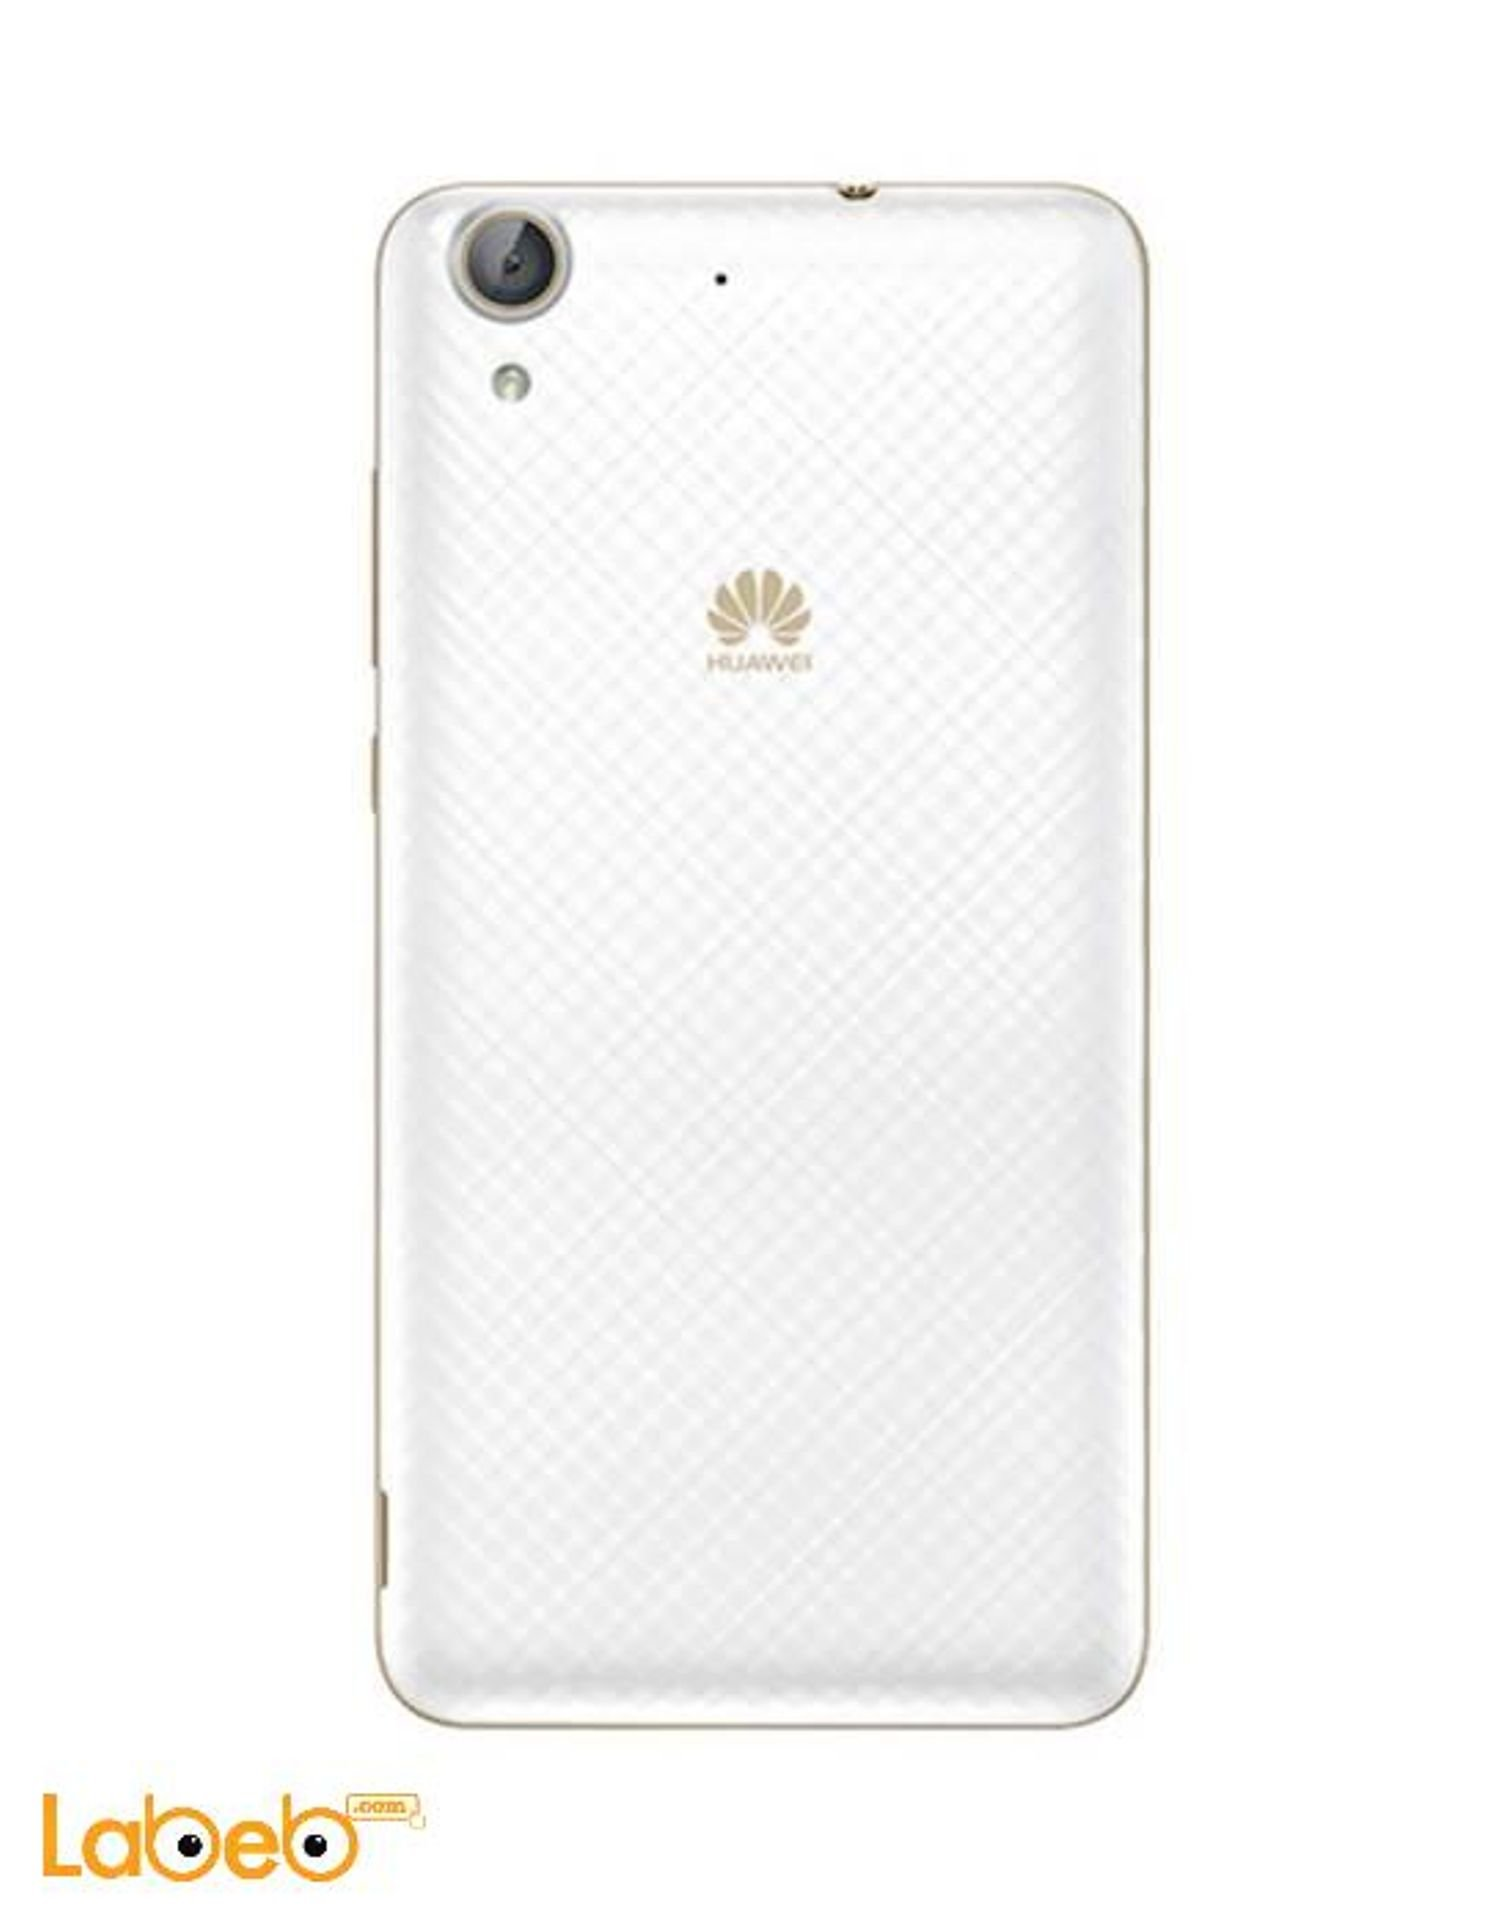 huawei y6ii smartphone  16gb  white color  cam